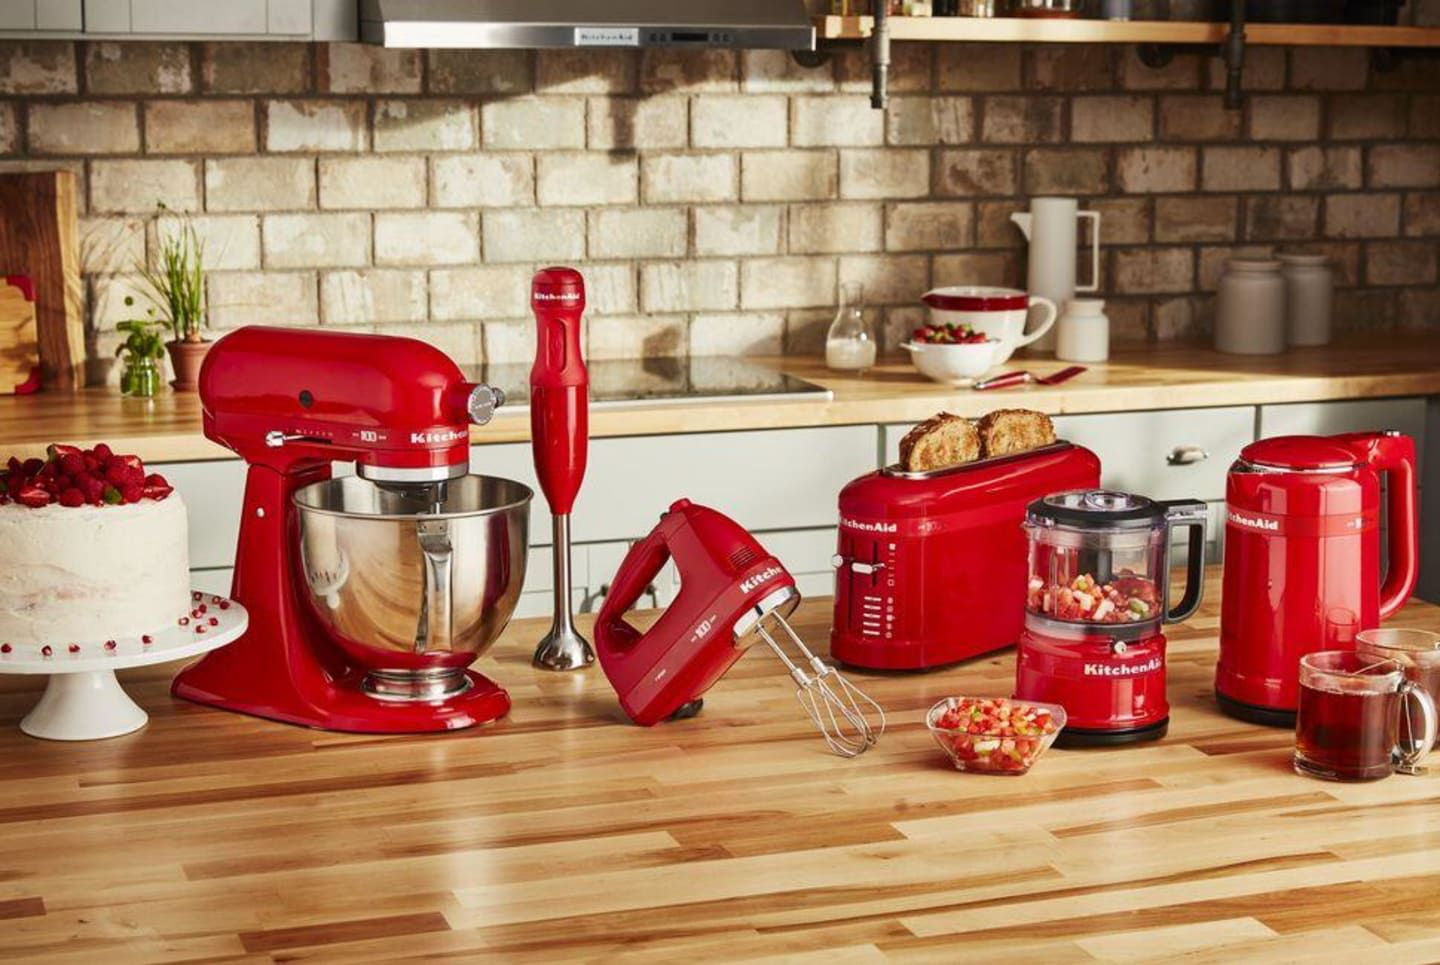 Enter for your chance to win a kitchenaid queen of hearts